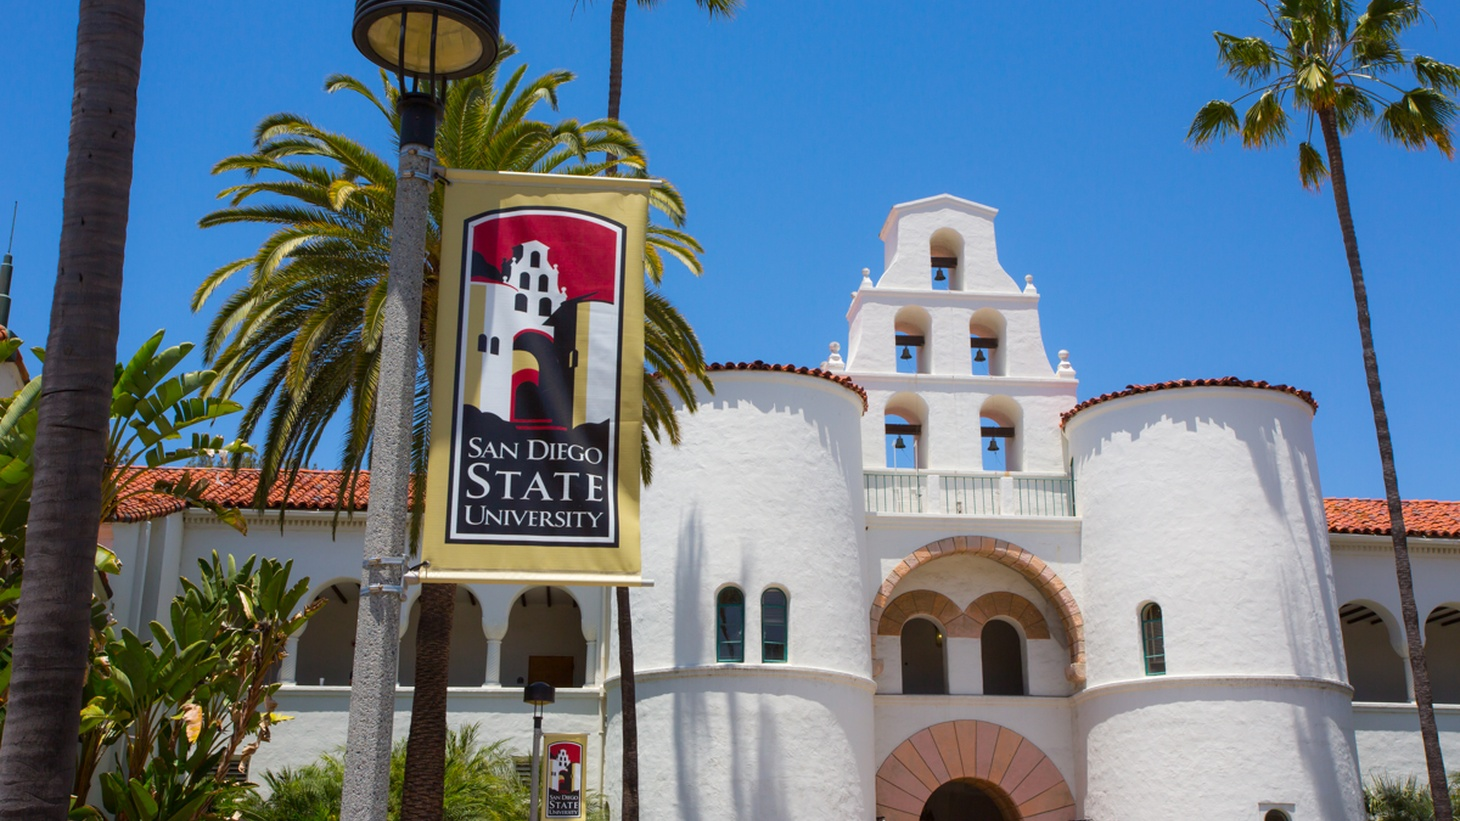 Hepner Hall on campus at SDSU in San Diego, California.